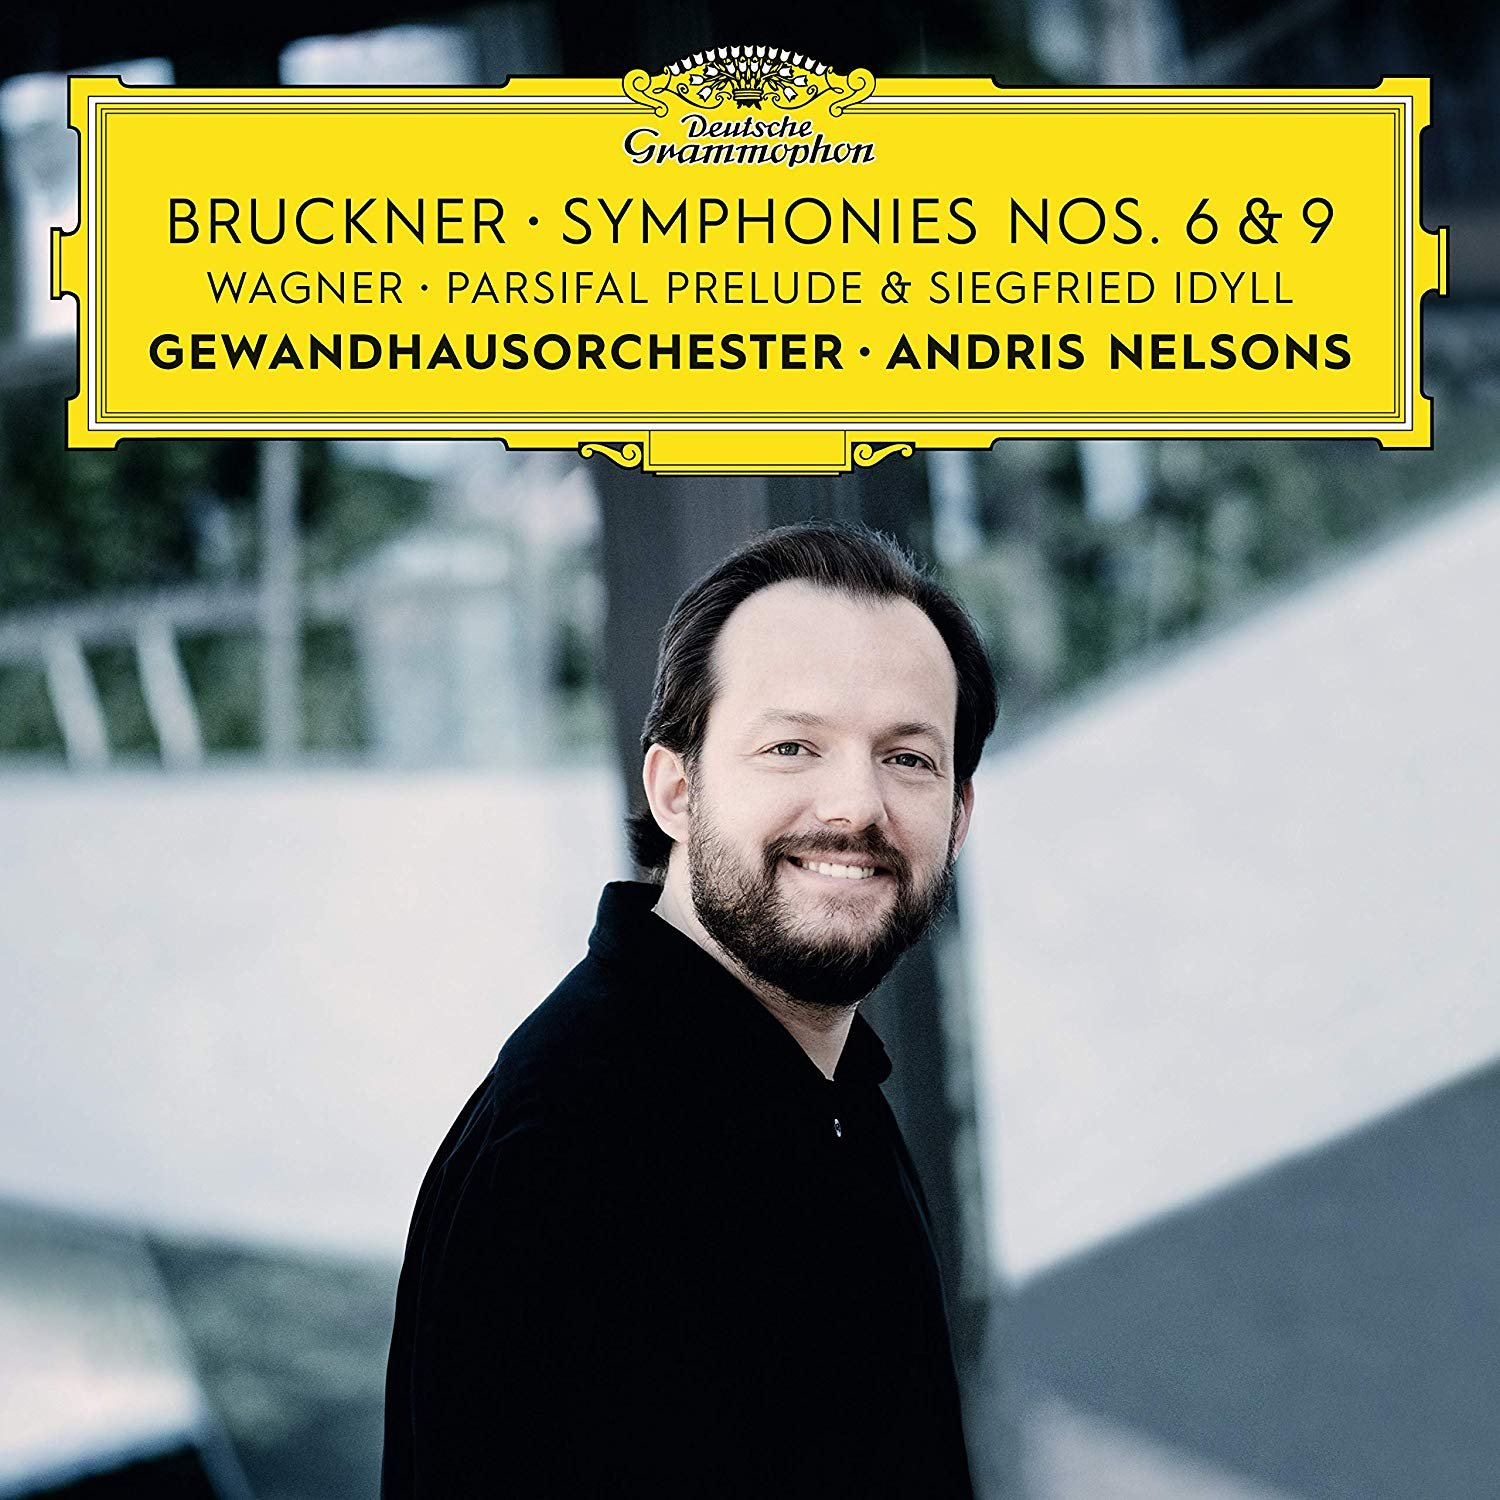 Bruckner: Symphonies Nos. 6 & 9 – Wagner: Siegfried Idyll / Parsifal Prelude